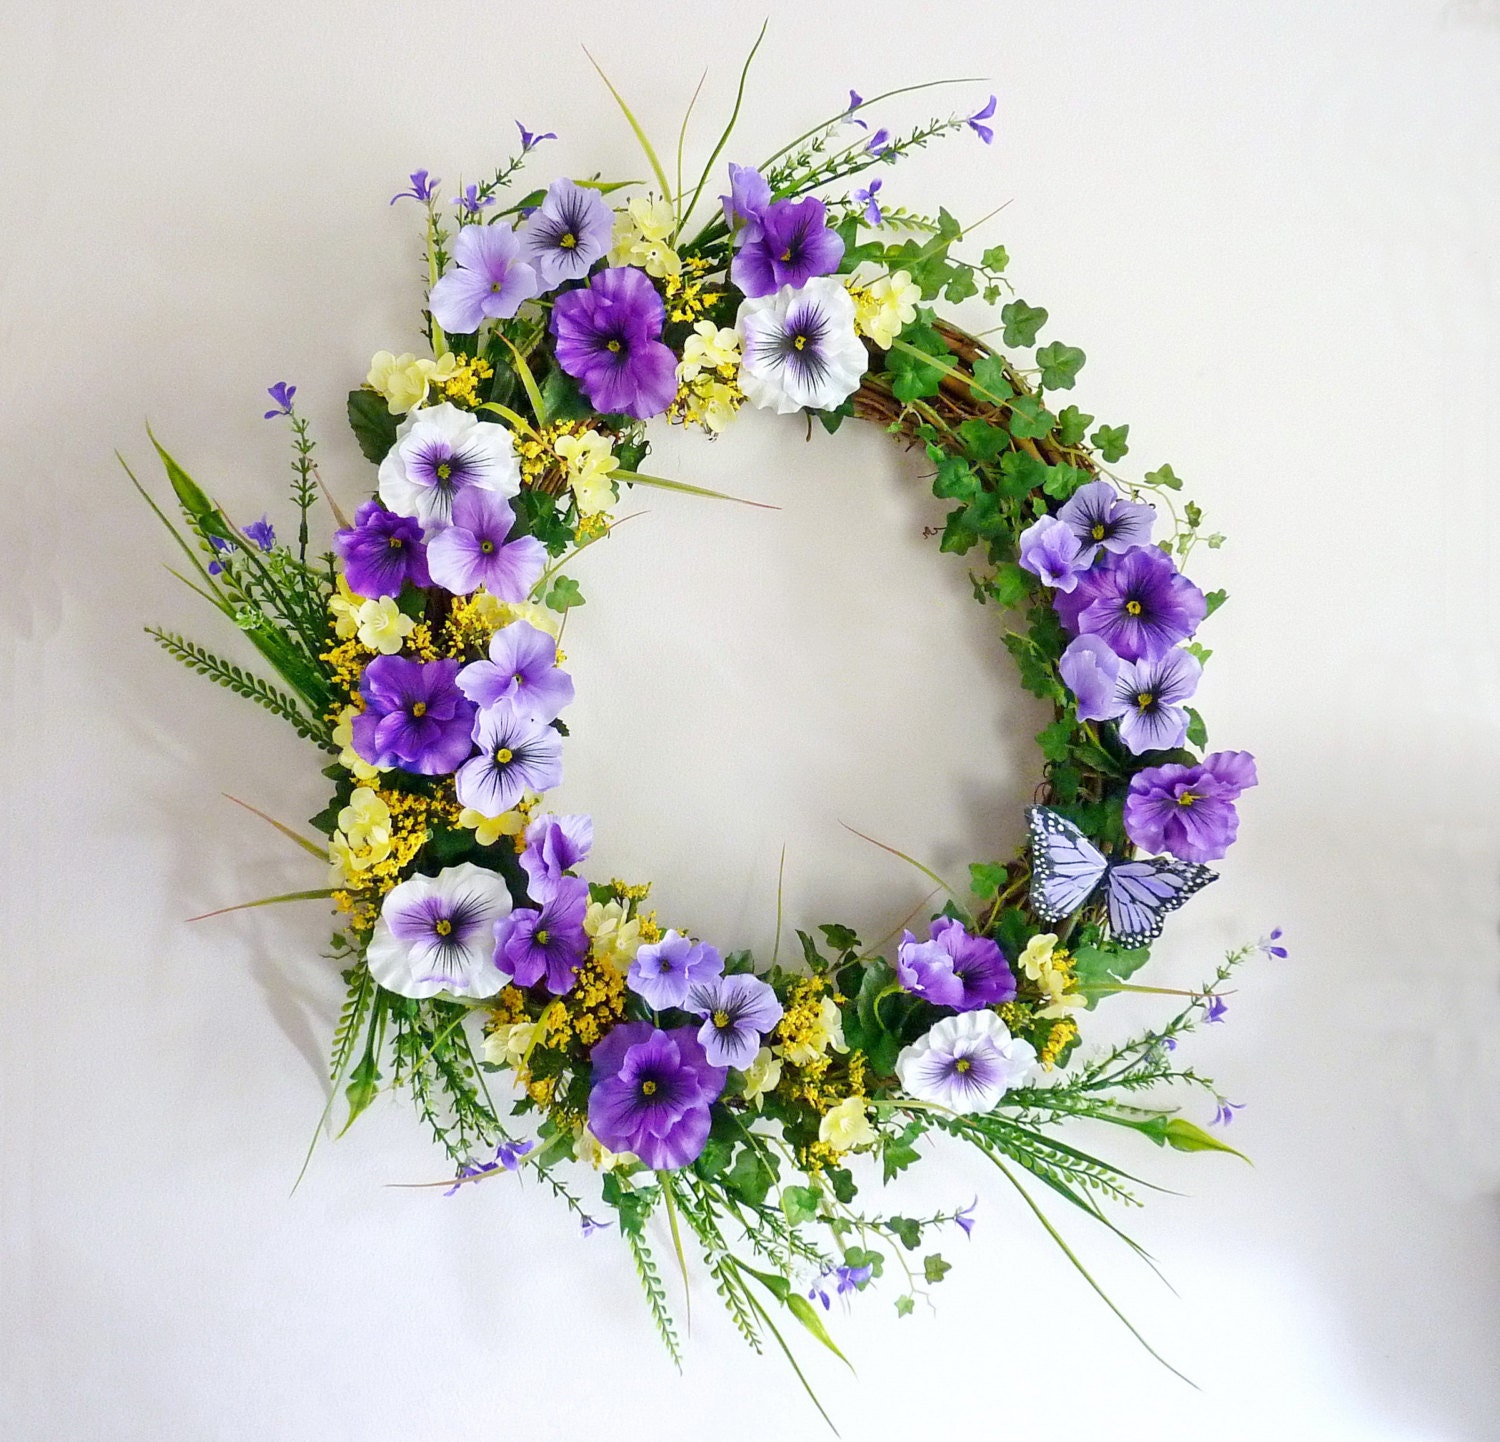 Purple Pansy And Wildflowers Spring Wreath Front Door Wreath